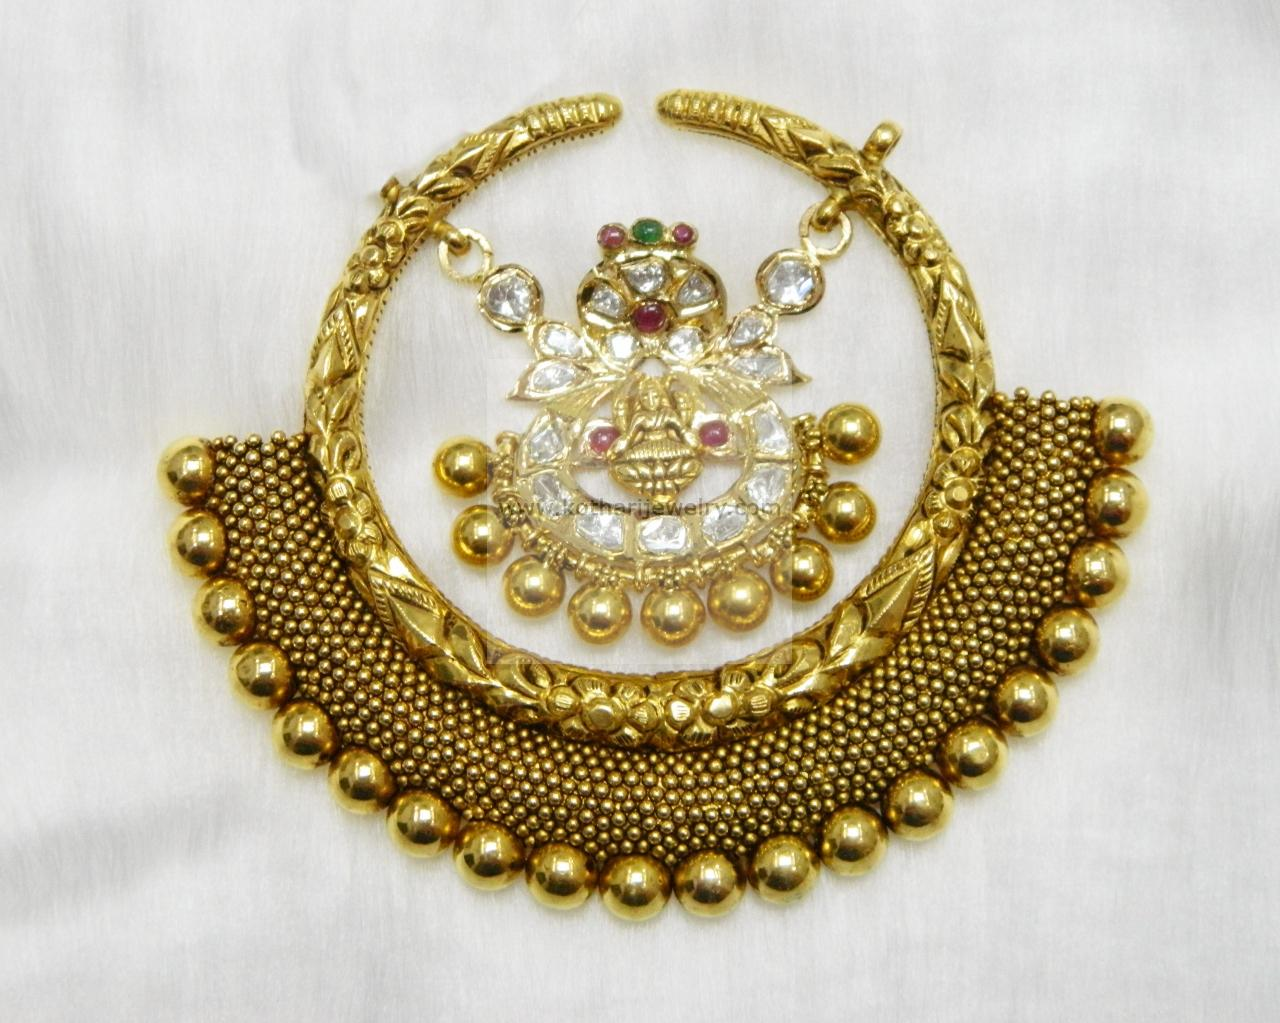 gold images jewelers jewelry diamond store best like totaramjeweler buy on to and temple jewellery pendant pendants online chains decorations totaram pinterest indian